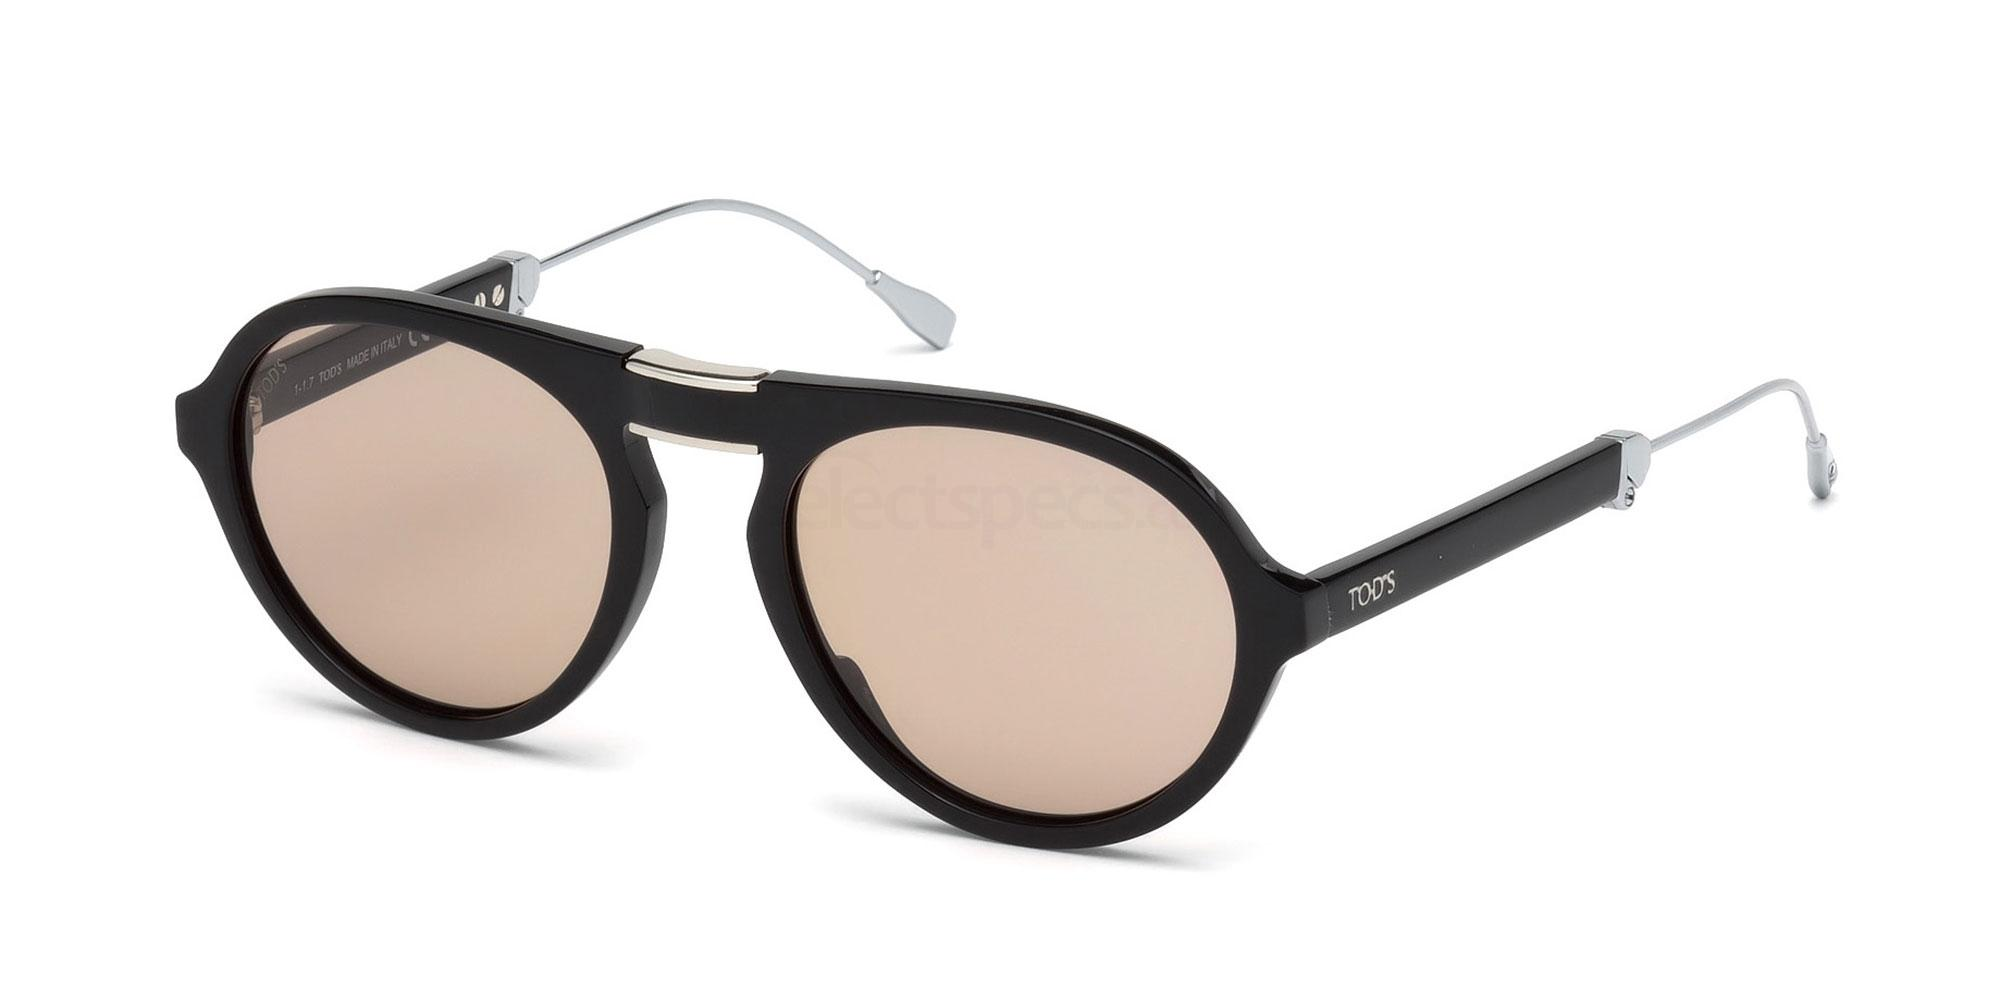 01E TO0221 Sunglasses, TODS